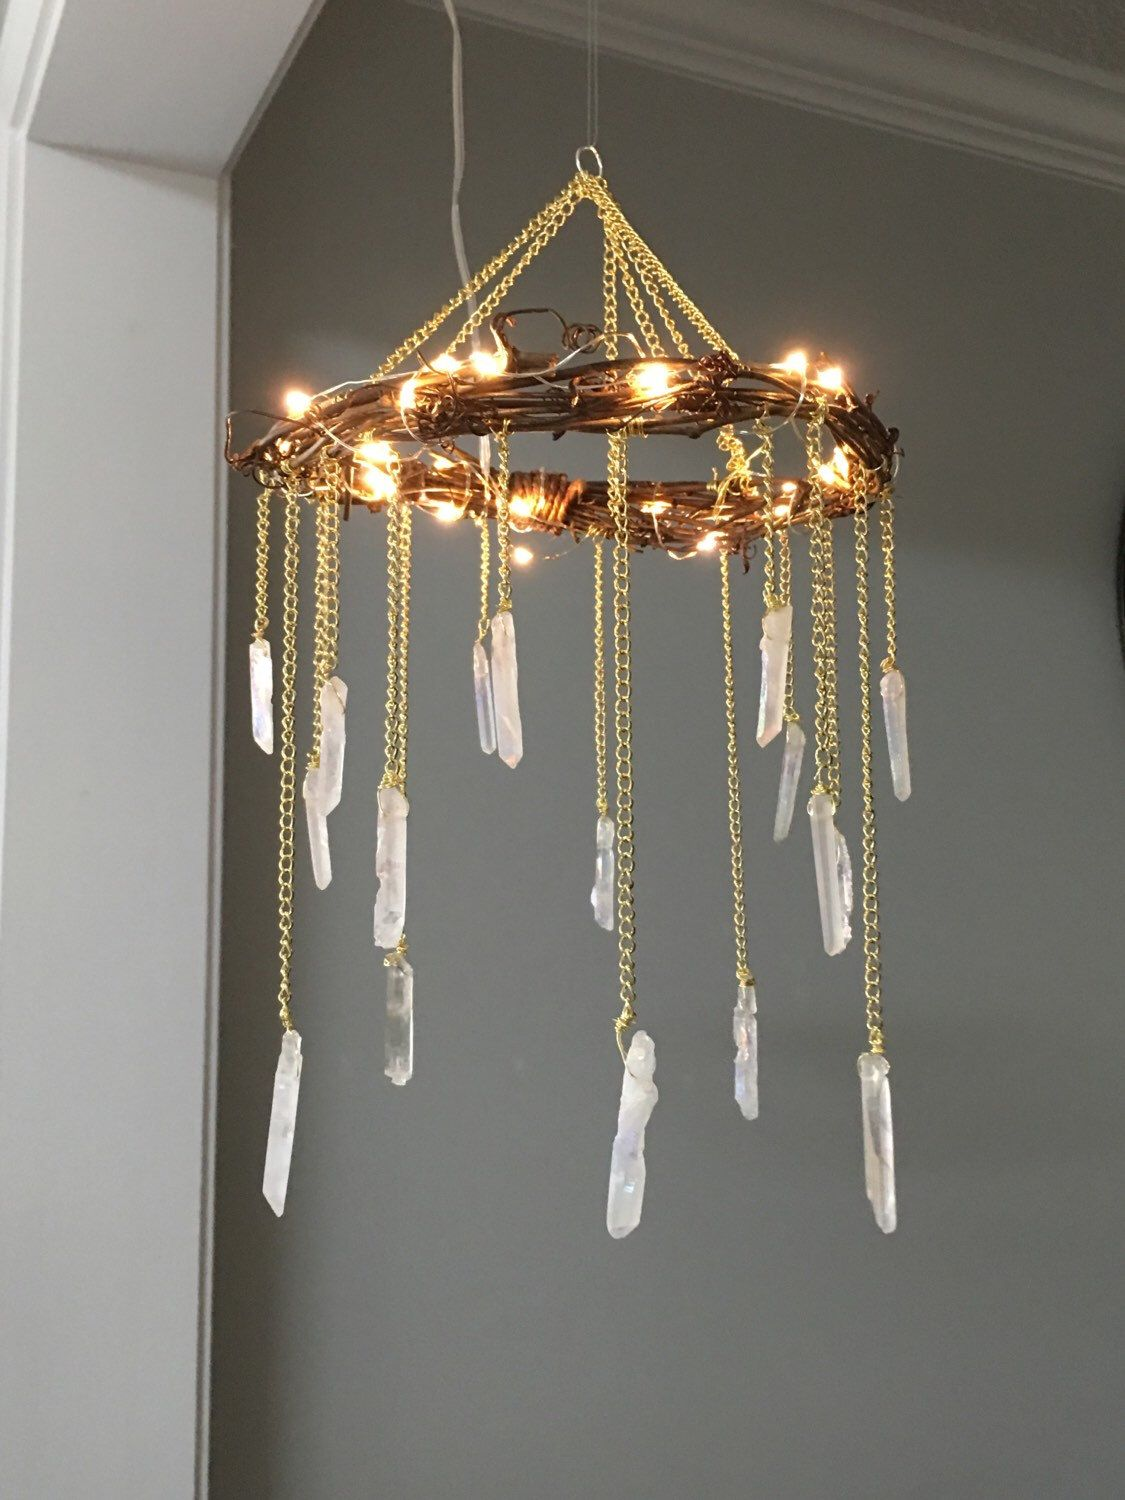 Crystal Mobile- Crystal Point Bohemian Mobile- Quartz Point Crystal Chandelier - Rustic Lighted Chandelier- Bohemian Home Decor- Wedding #rustichomedecor